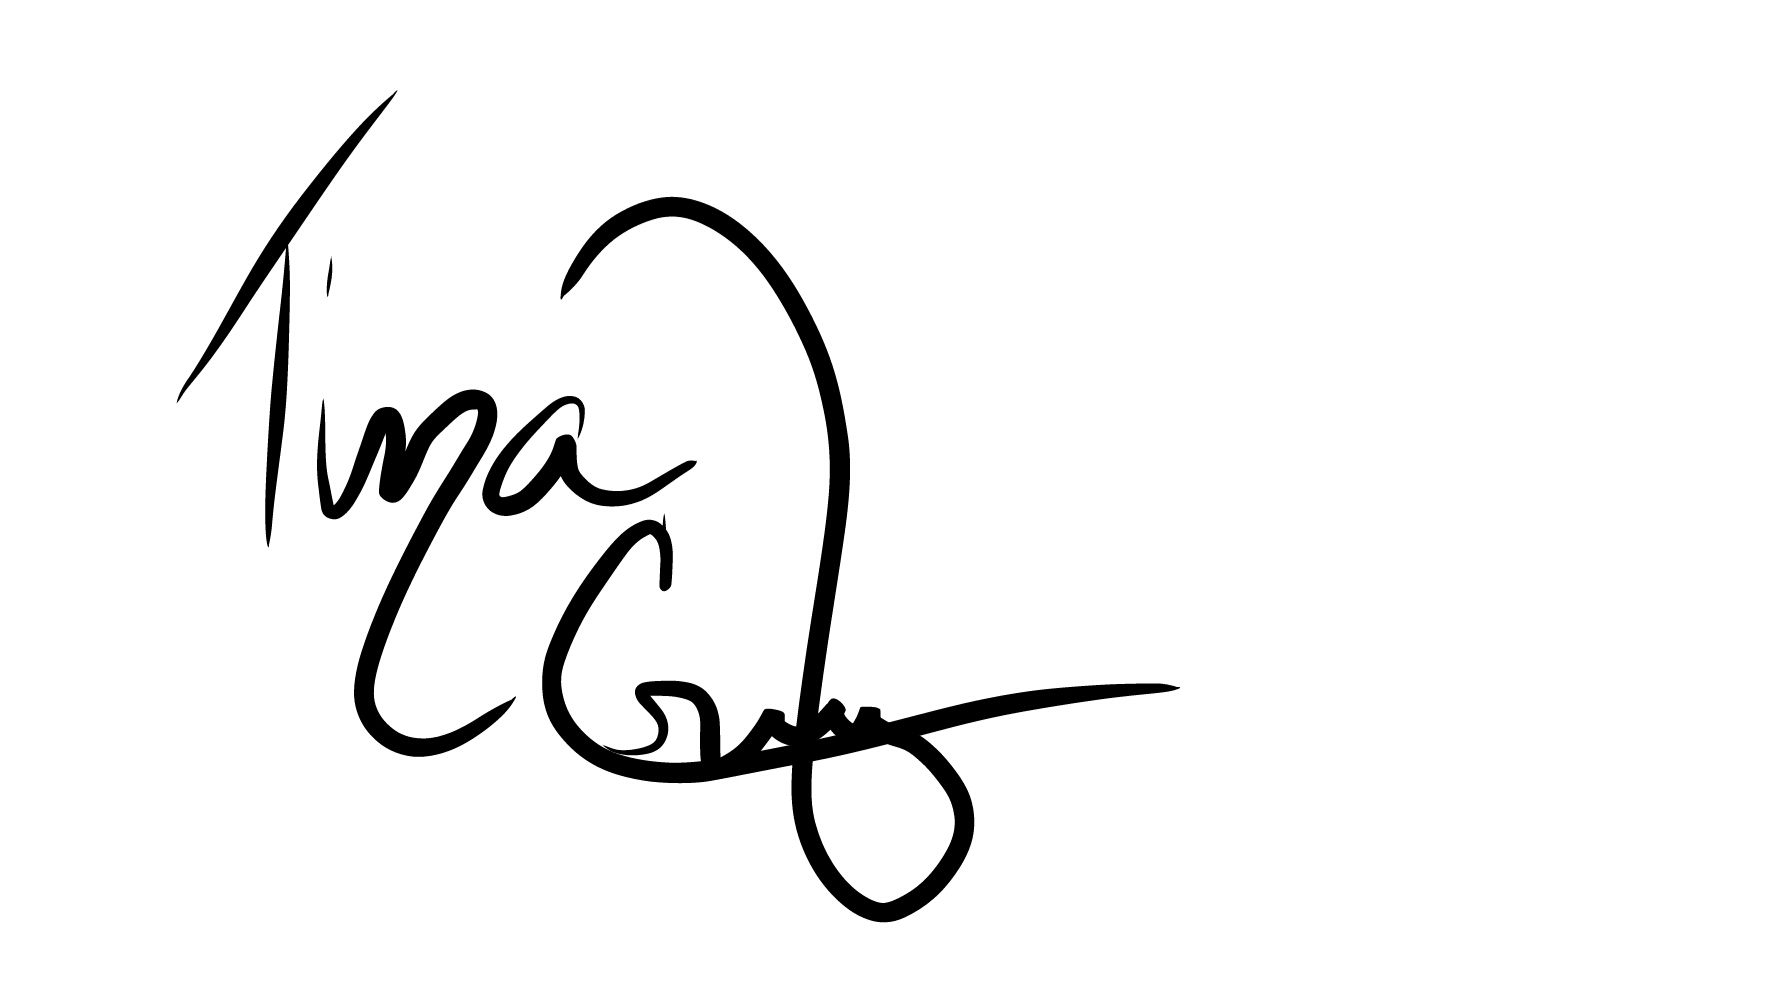 Tina Cruz's Signature